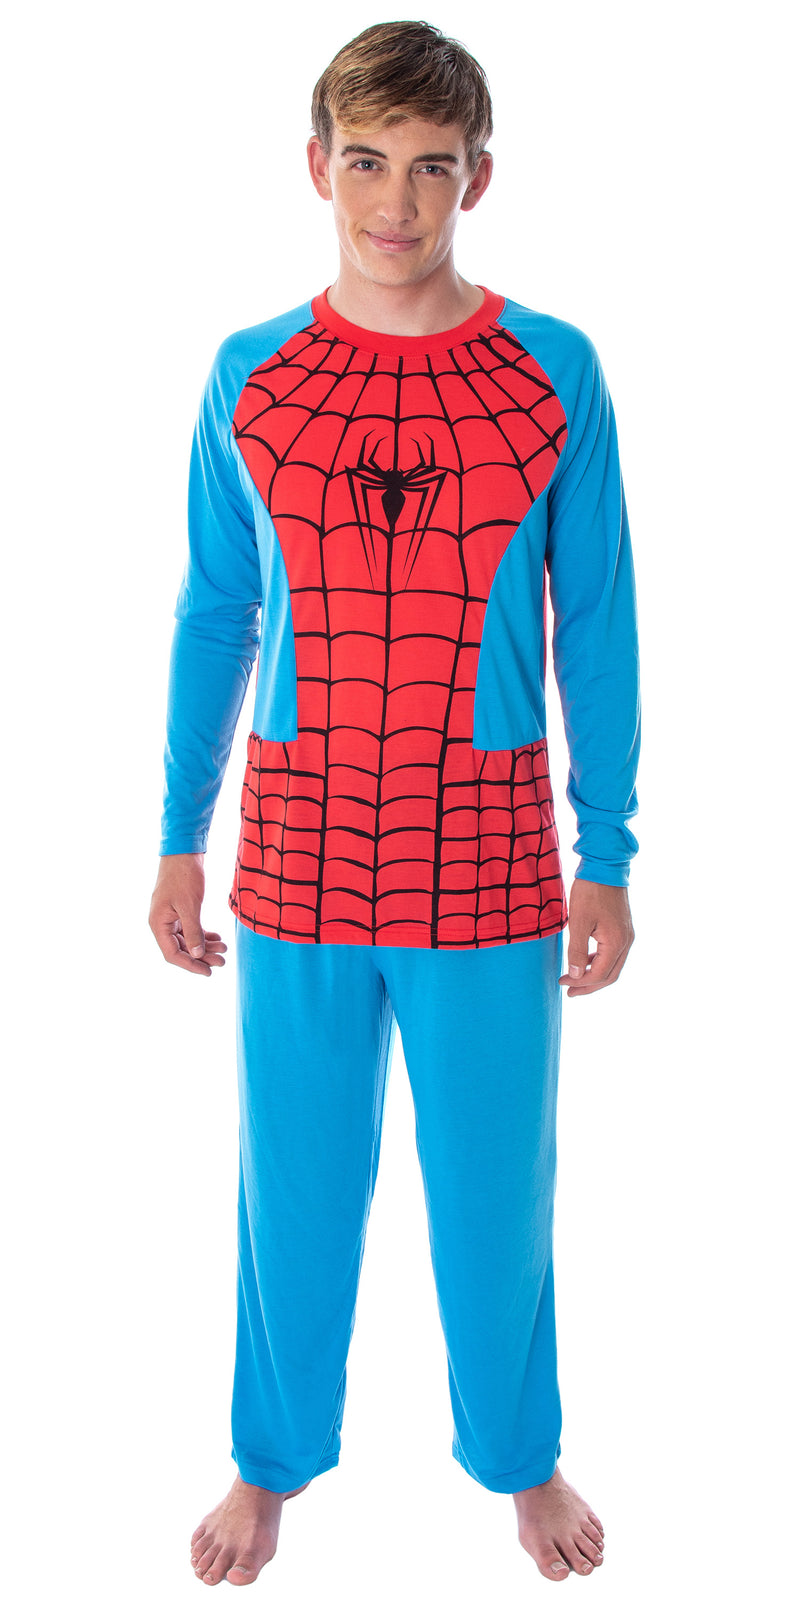 Marvel Men's Spiderman Classic Superhero Costume Raglan Shirt And Pants 2 Piece Pajama Set